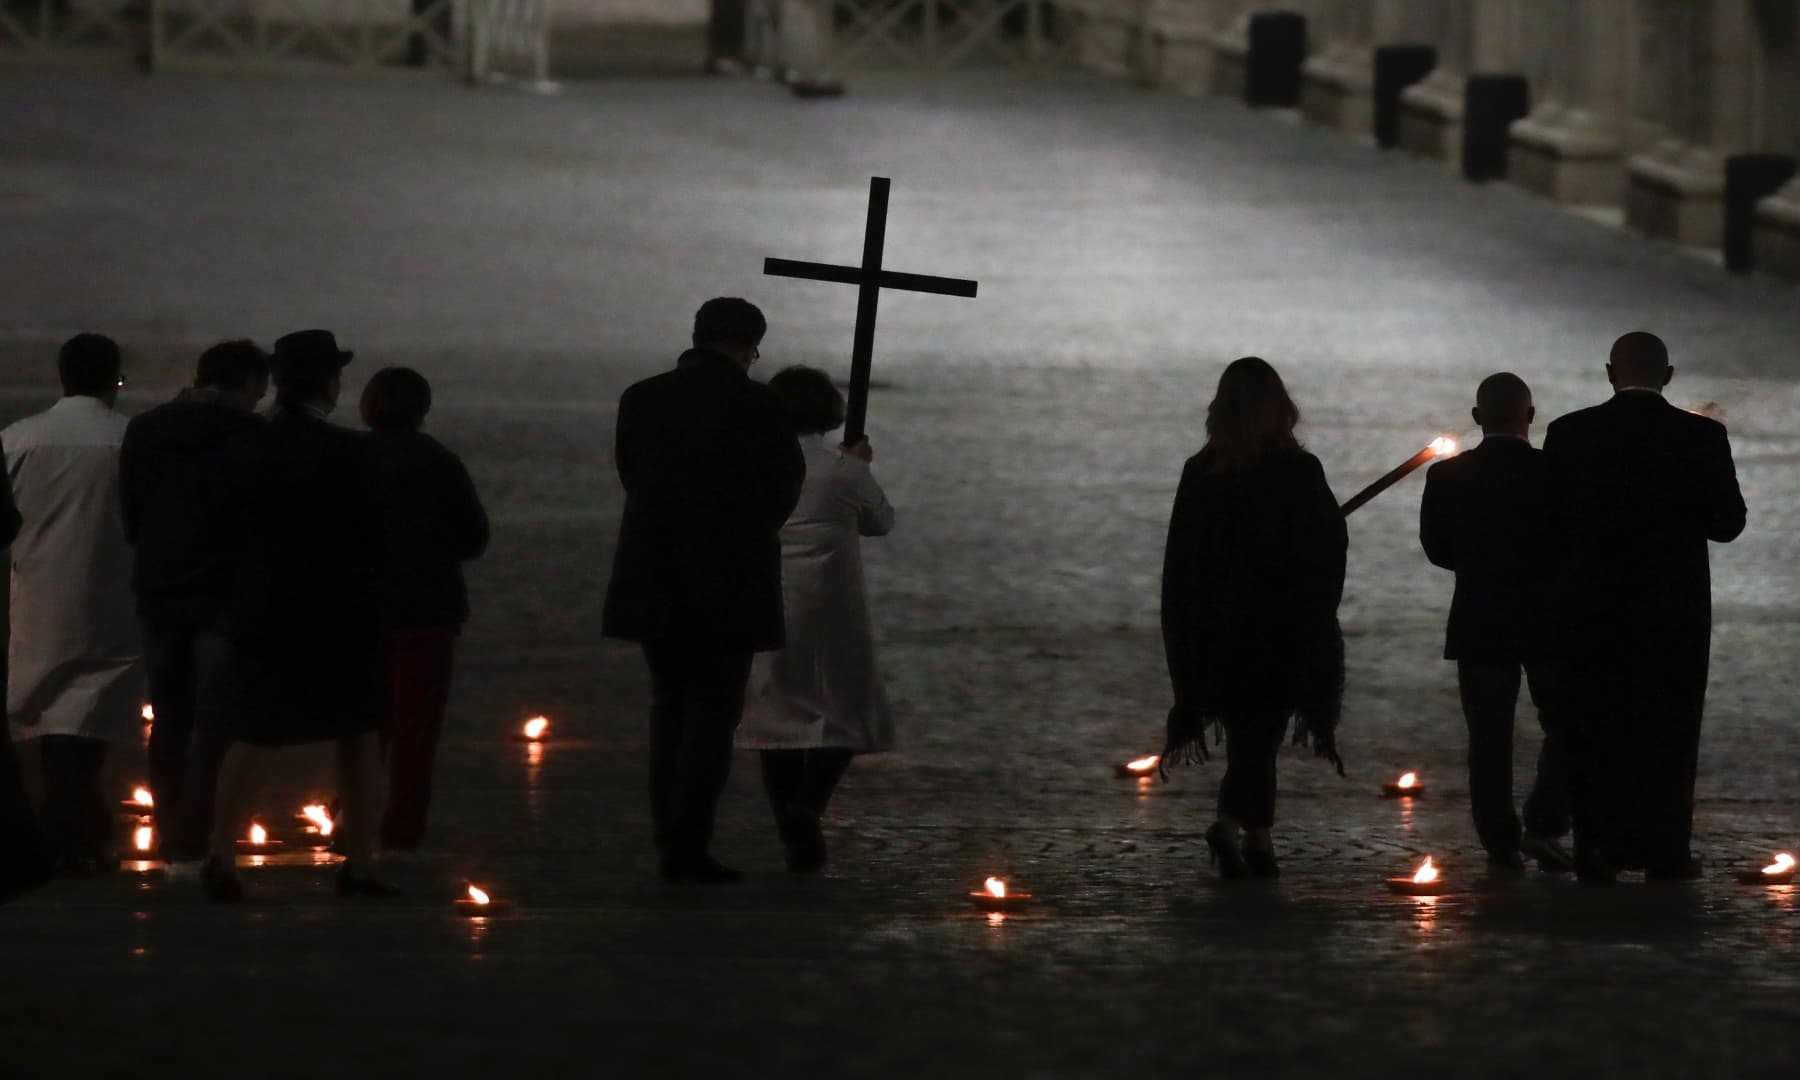 A woman holds the cross during the Via Crucis — or Way of the Cross — ceremony in St Peter's Square empty of the faithful following Italy's ban on gatherings to contain coronavirus contagion, at the Vatican on April 10. — AP